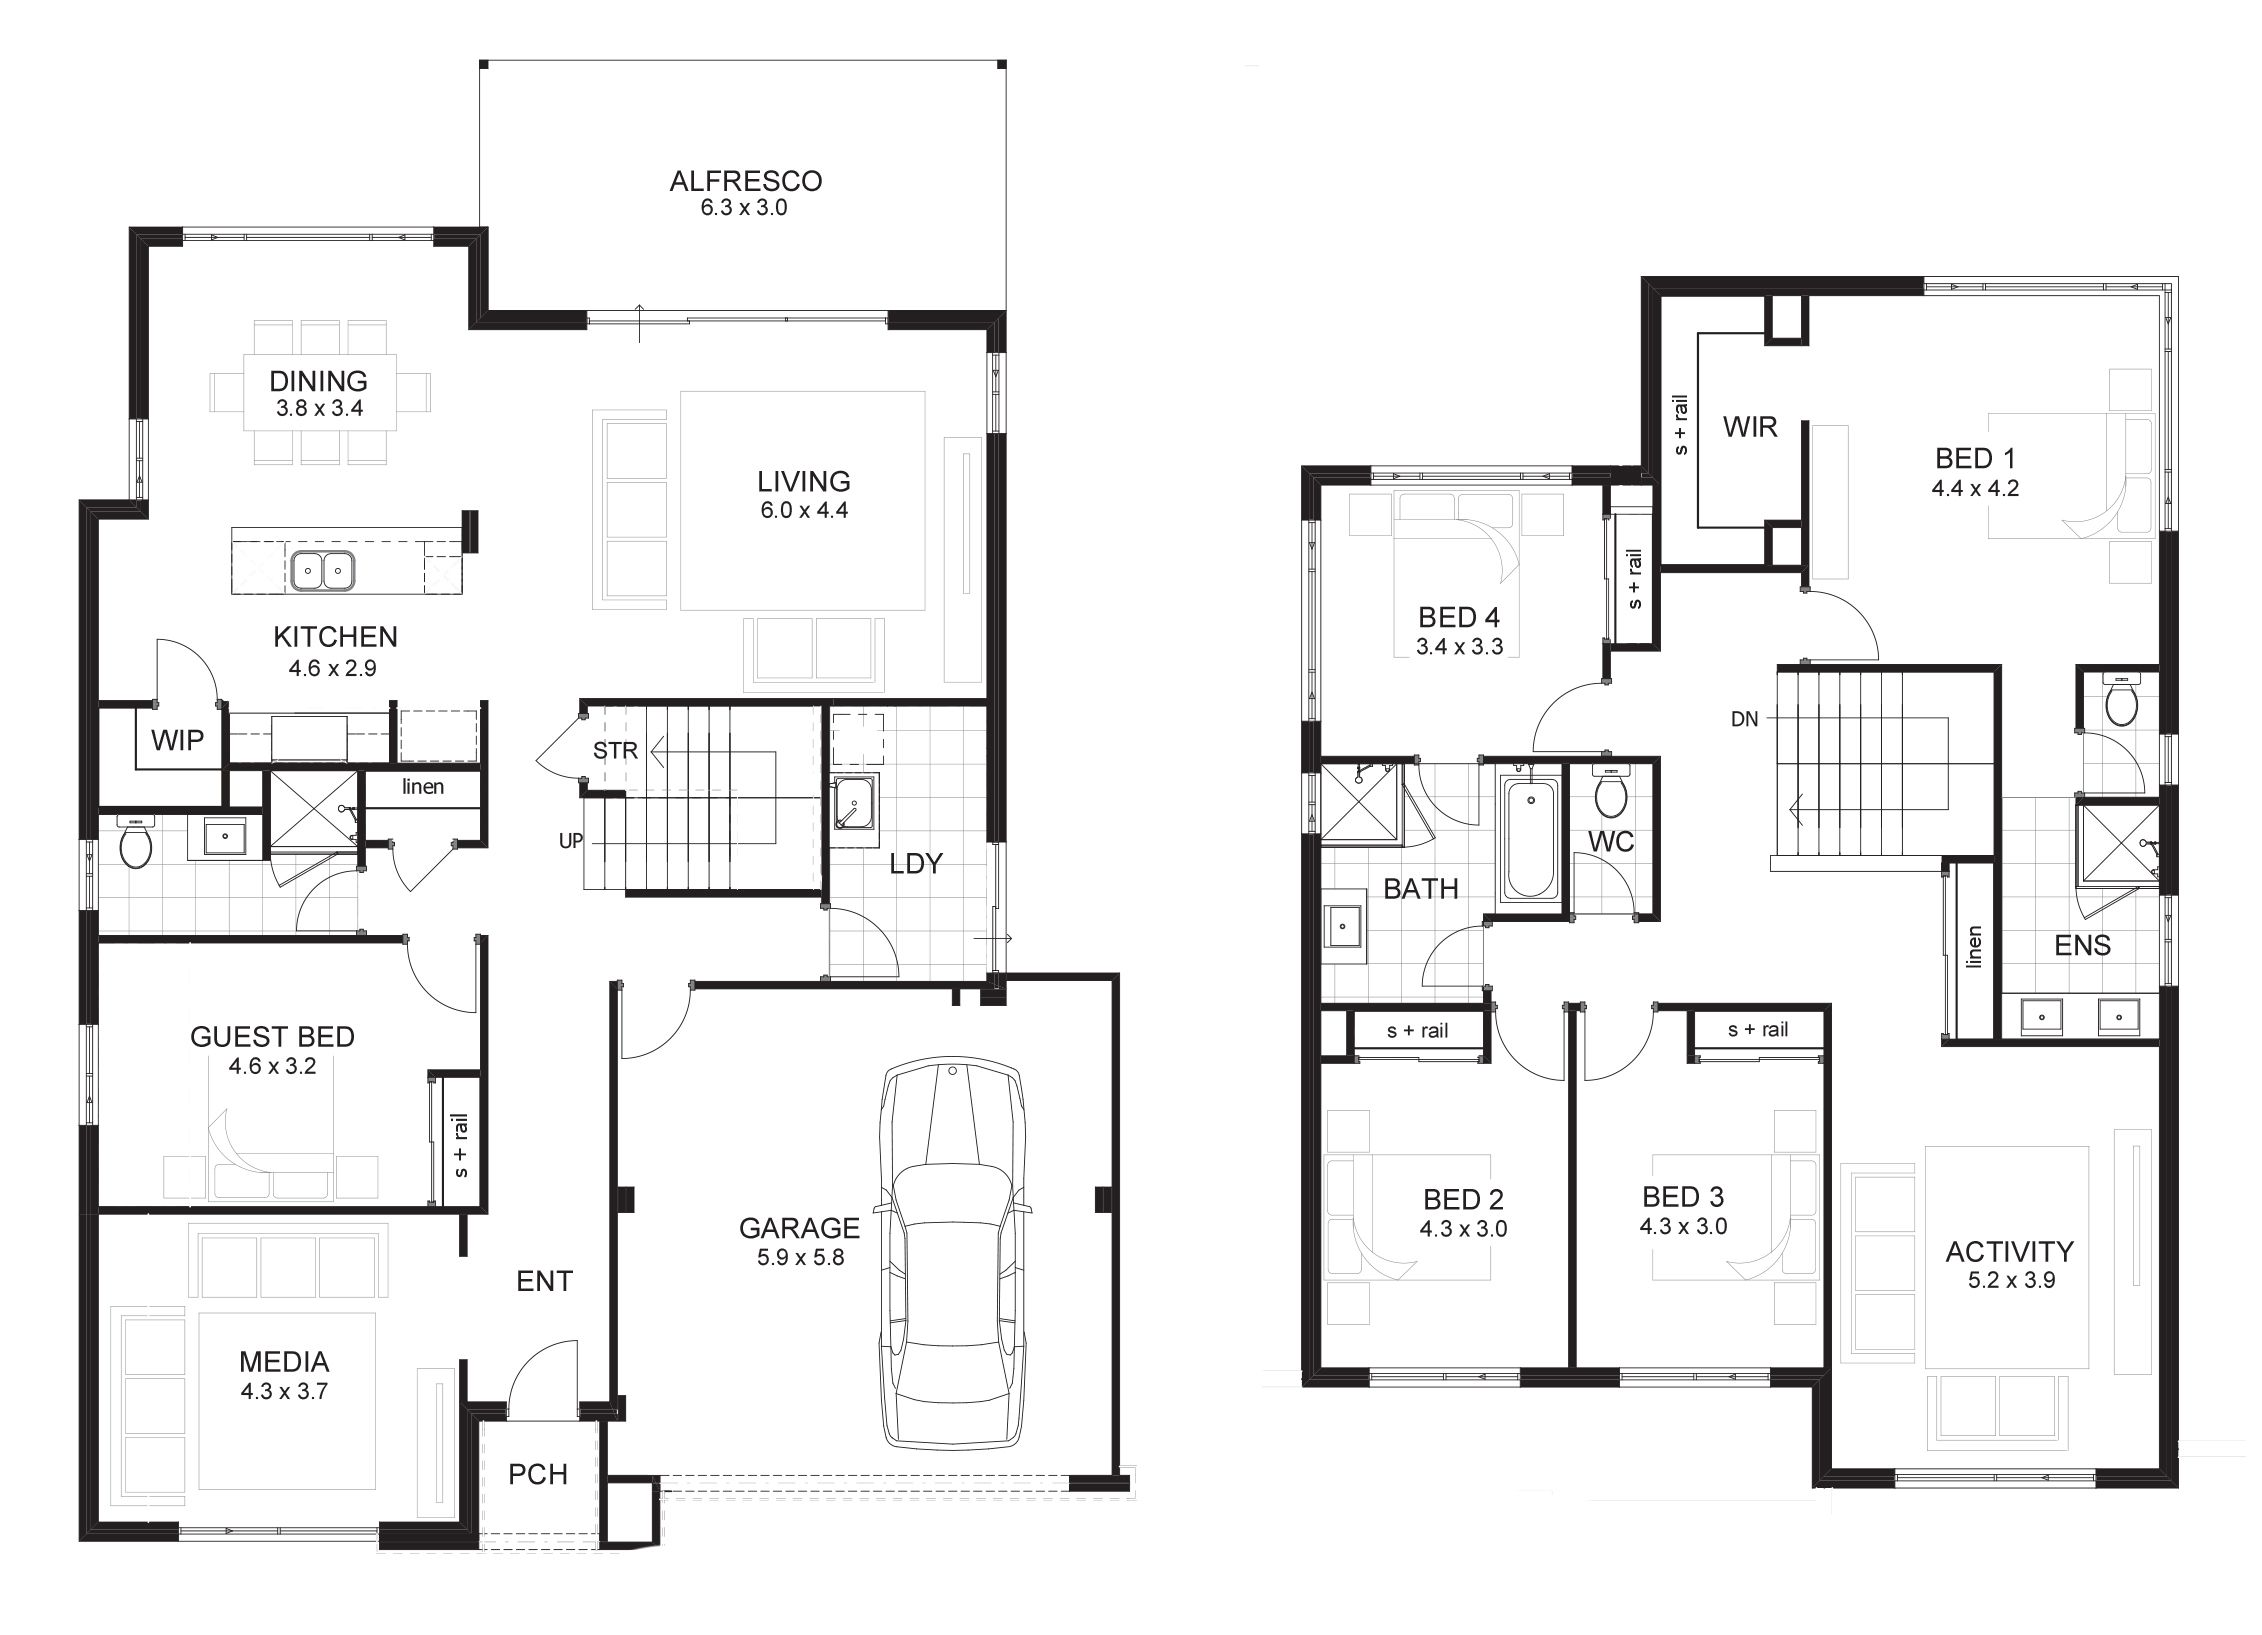 6 bedroom house plans perth pinterest Where to find house plans